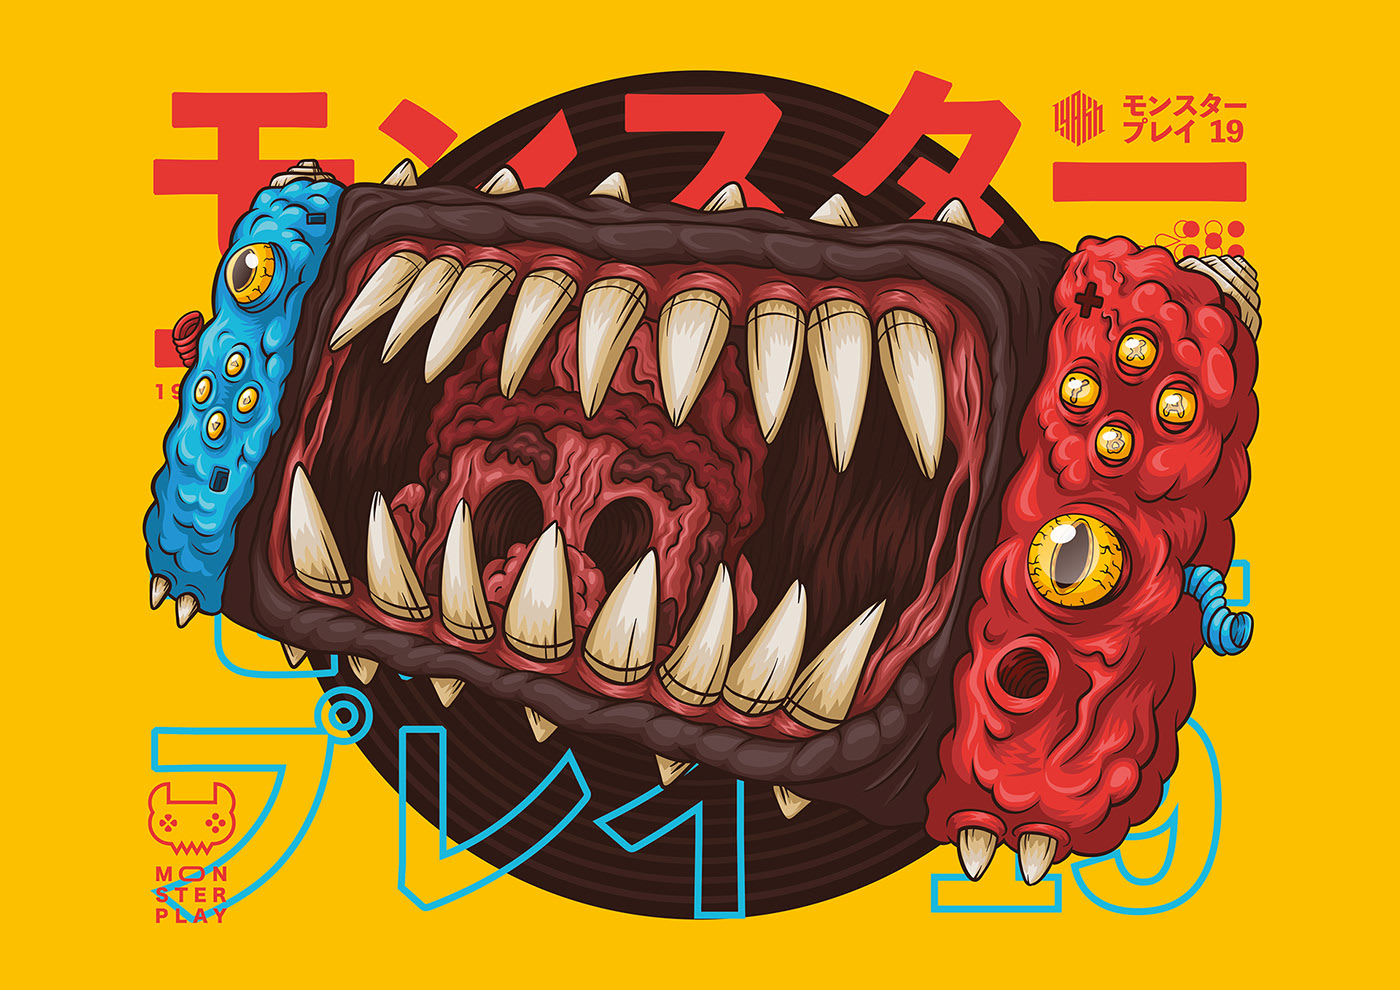 Gamepads turned into Monsters Illustrations